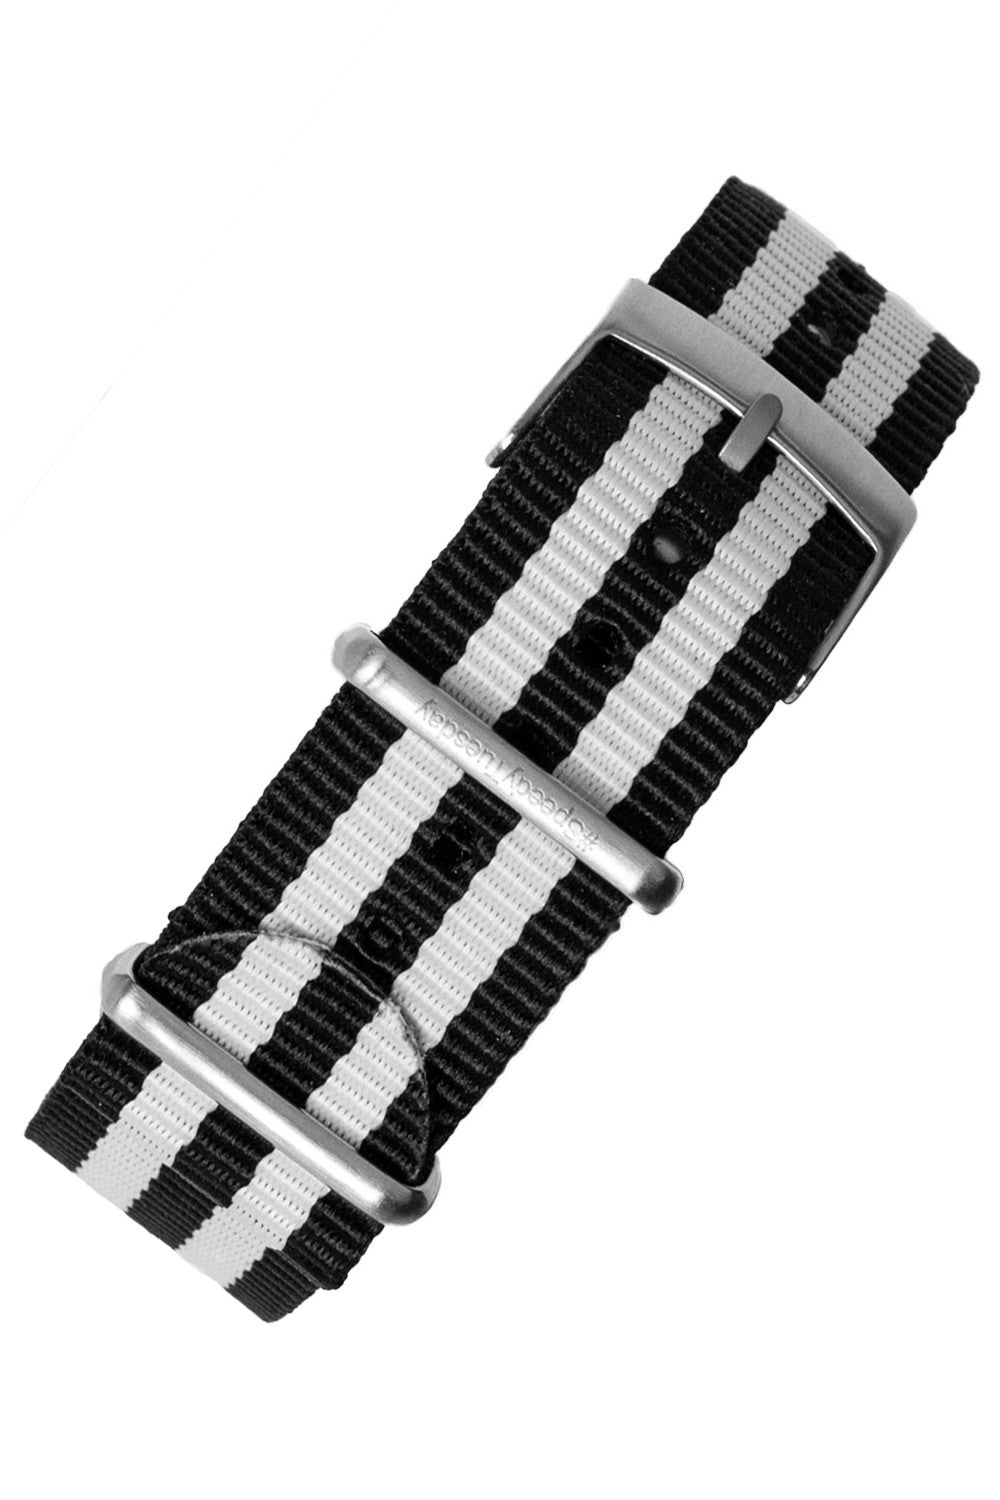 Nato Watch Strap in BLACK with WHITE Stripes - #SpeedyTuesday Edition